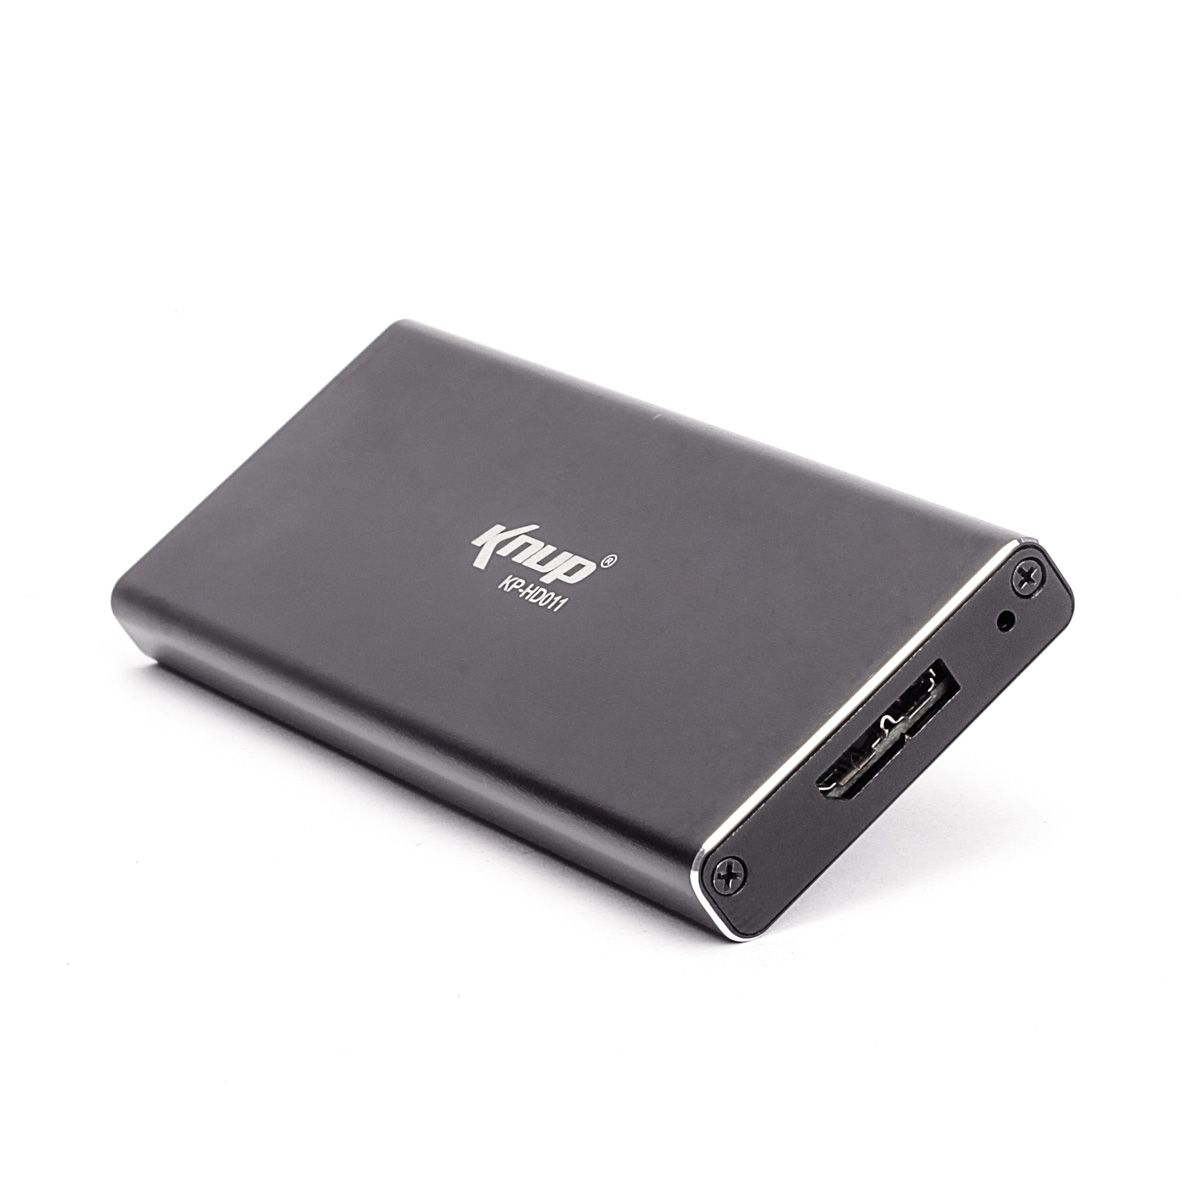 CASE SSD M.2 USB 3.0 KP-HD011